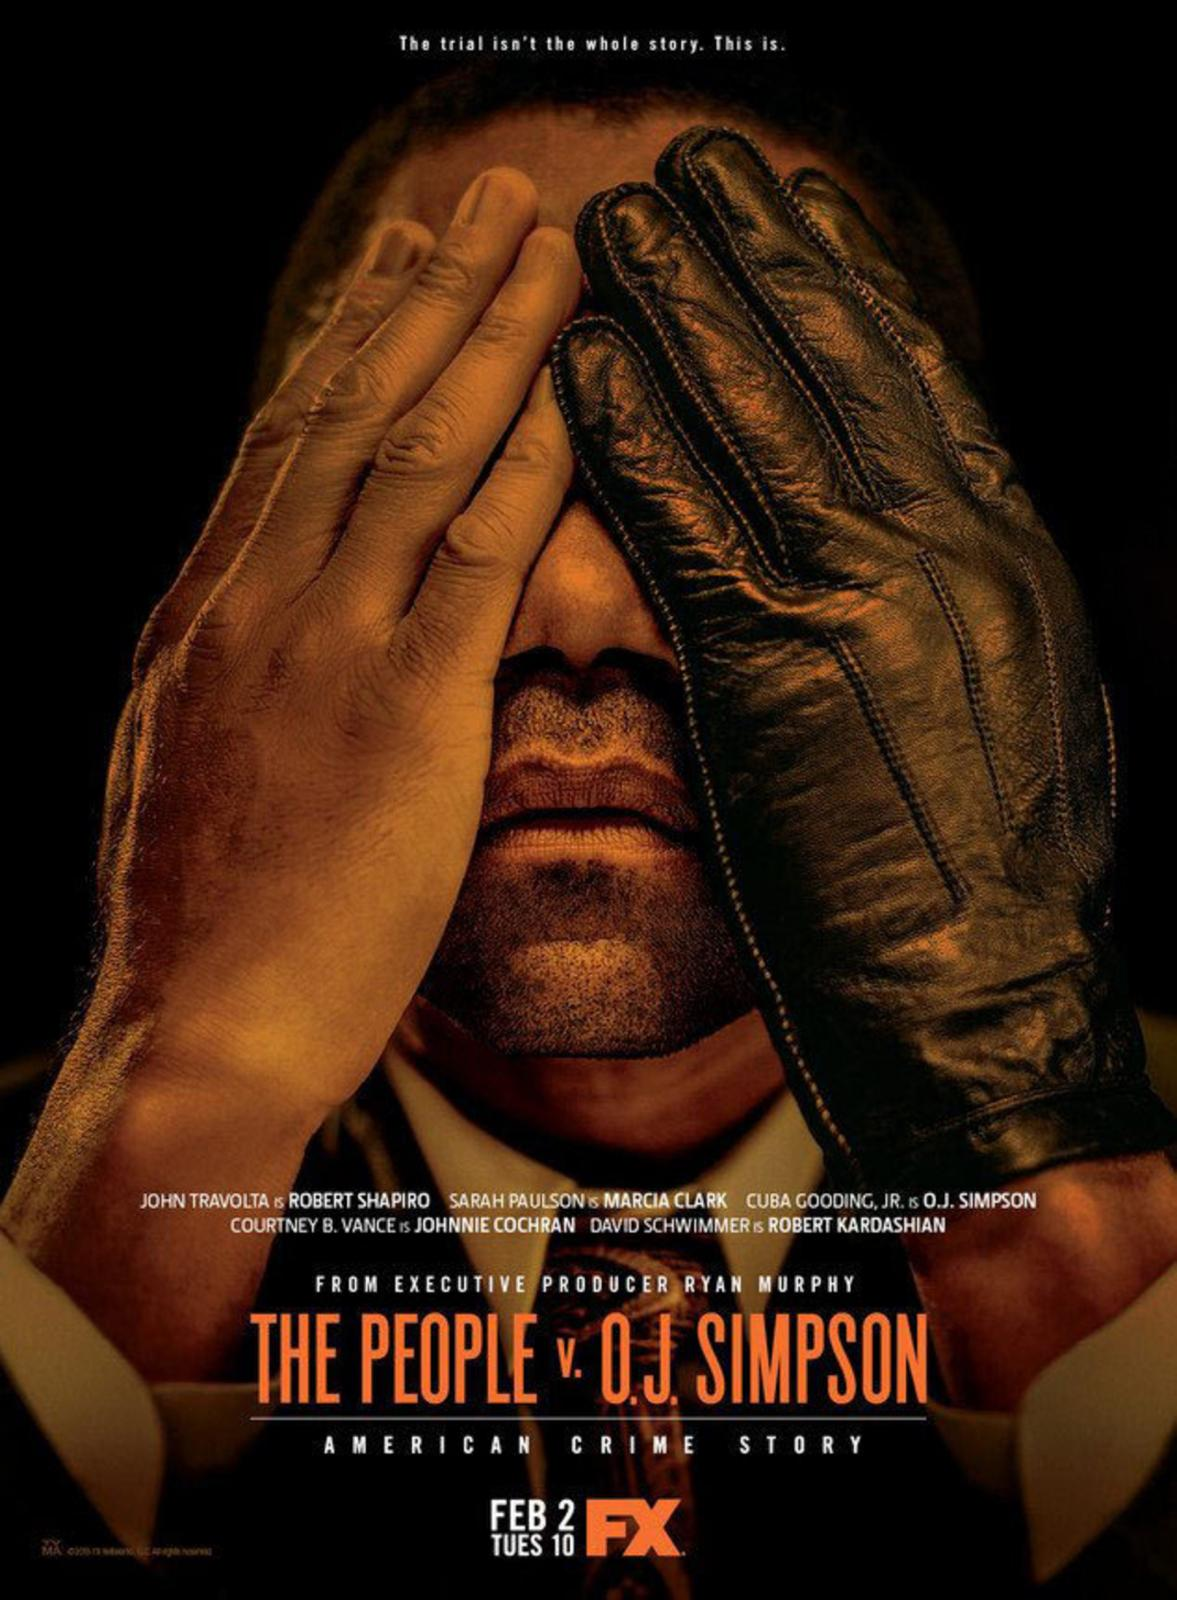 Сериал ~ Народ против О. Джея Симпсона. Американская история преступлений ~ The People v. O.J. Simpson. American Crime Story (FX)